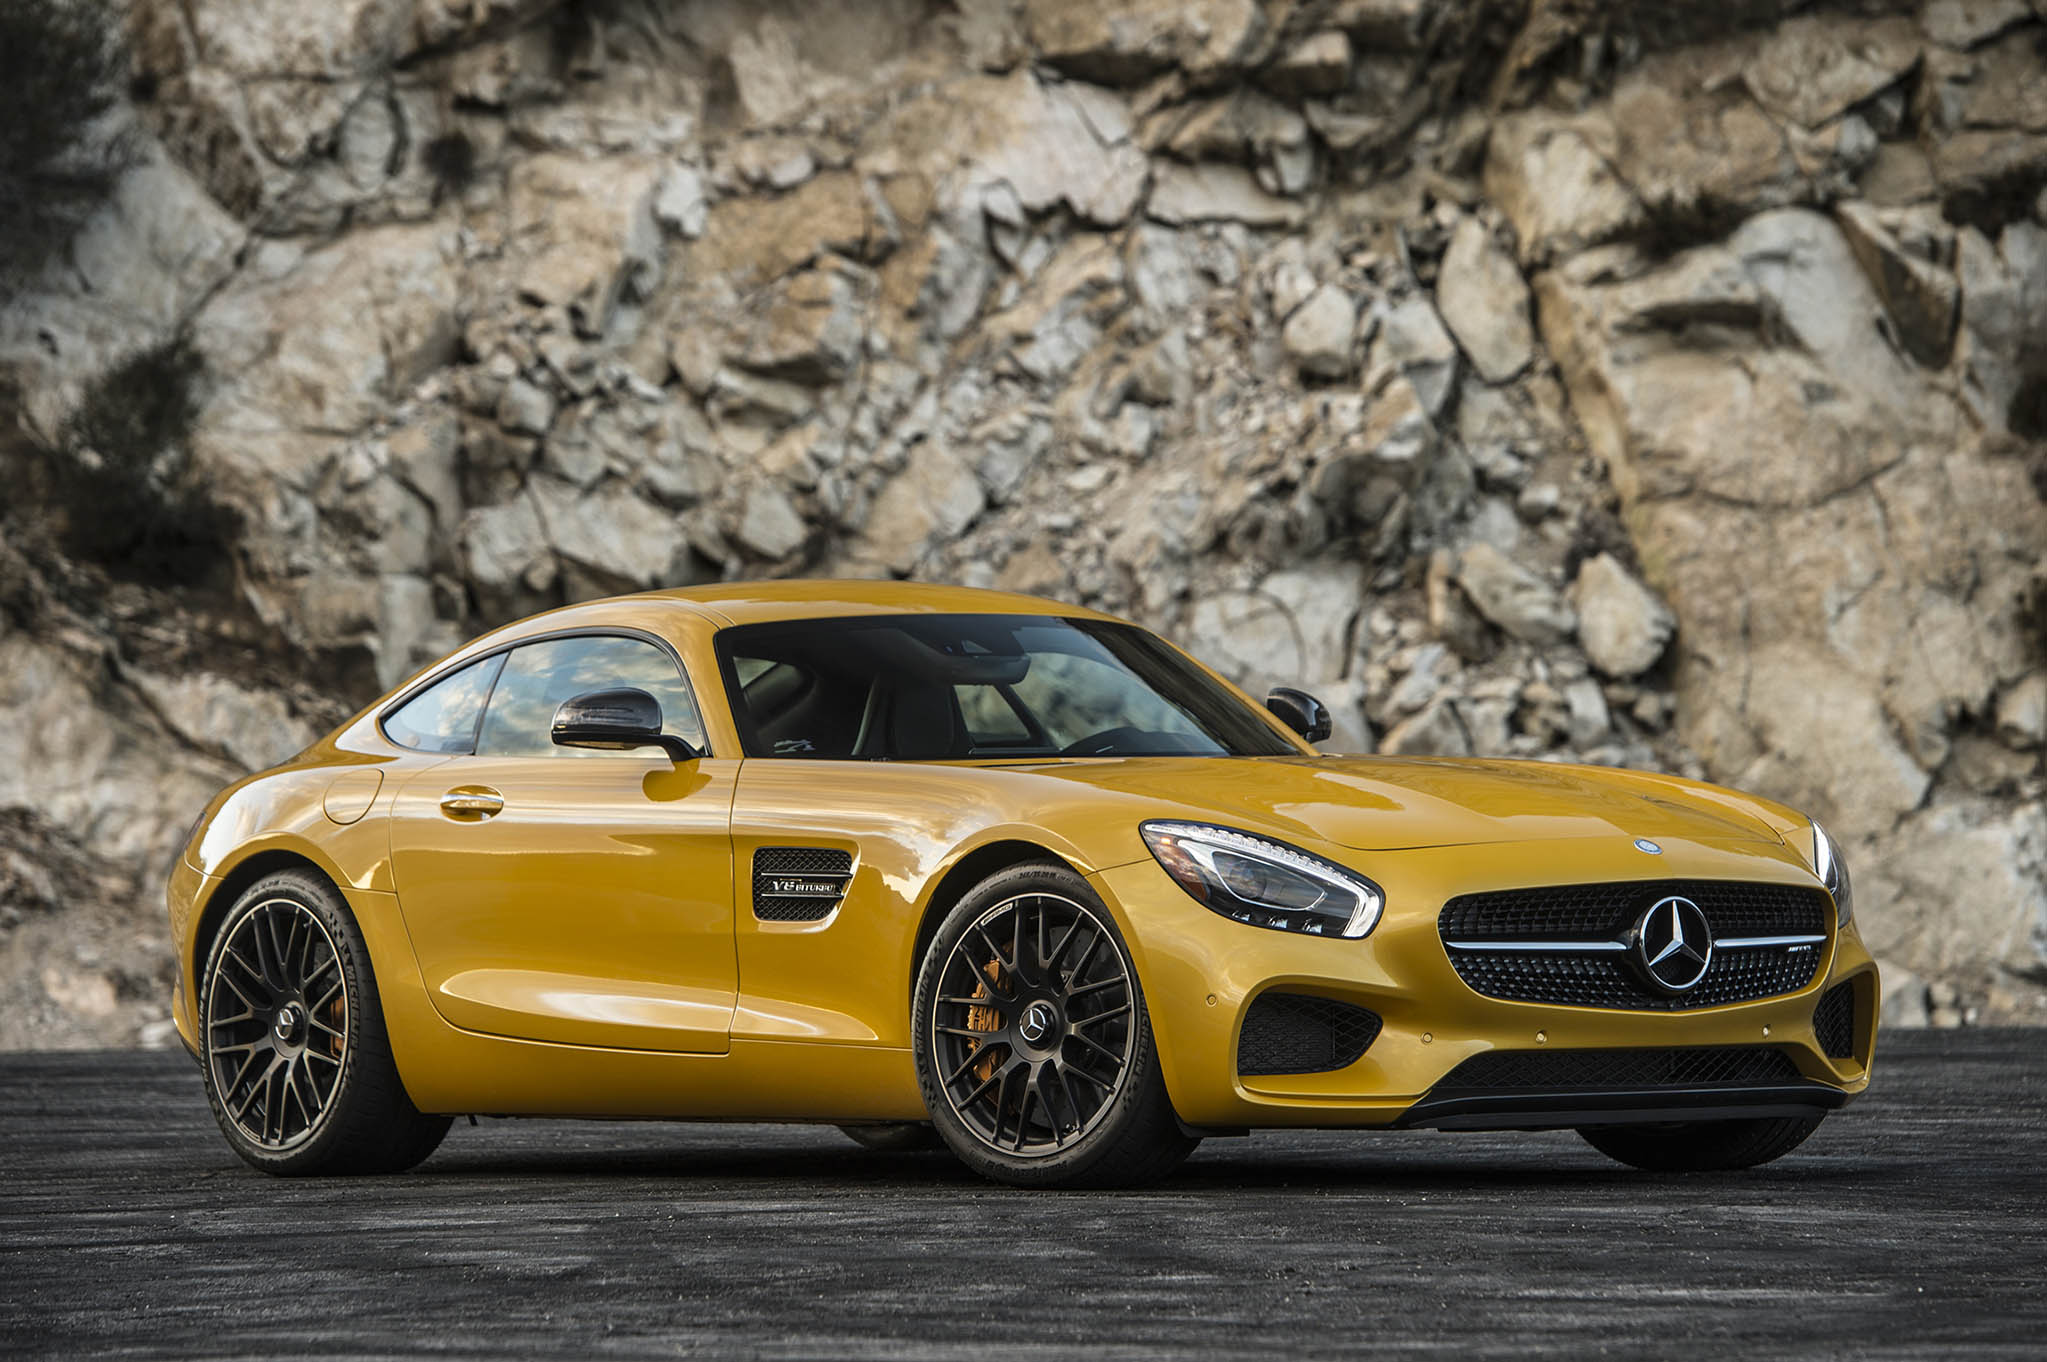 2016 Mercedes-Benz Amg Gt Photos, Informations, Articles ...